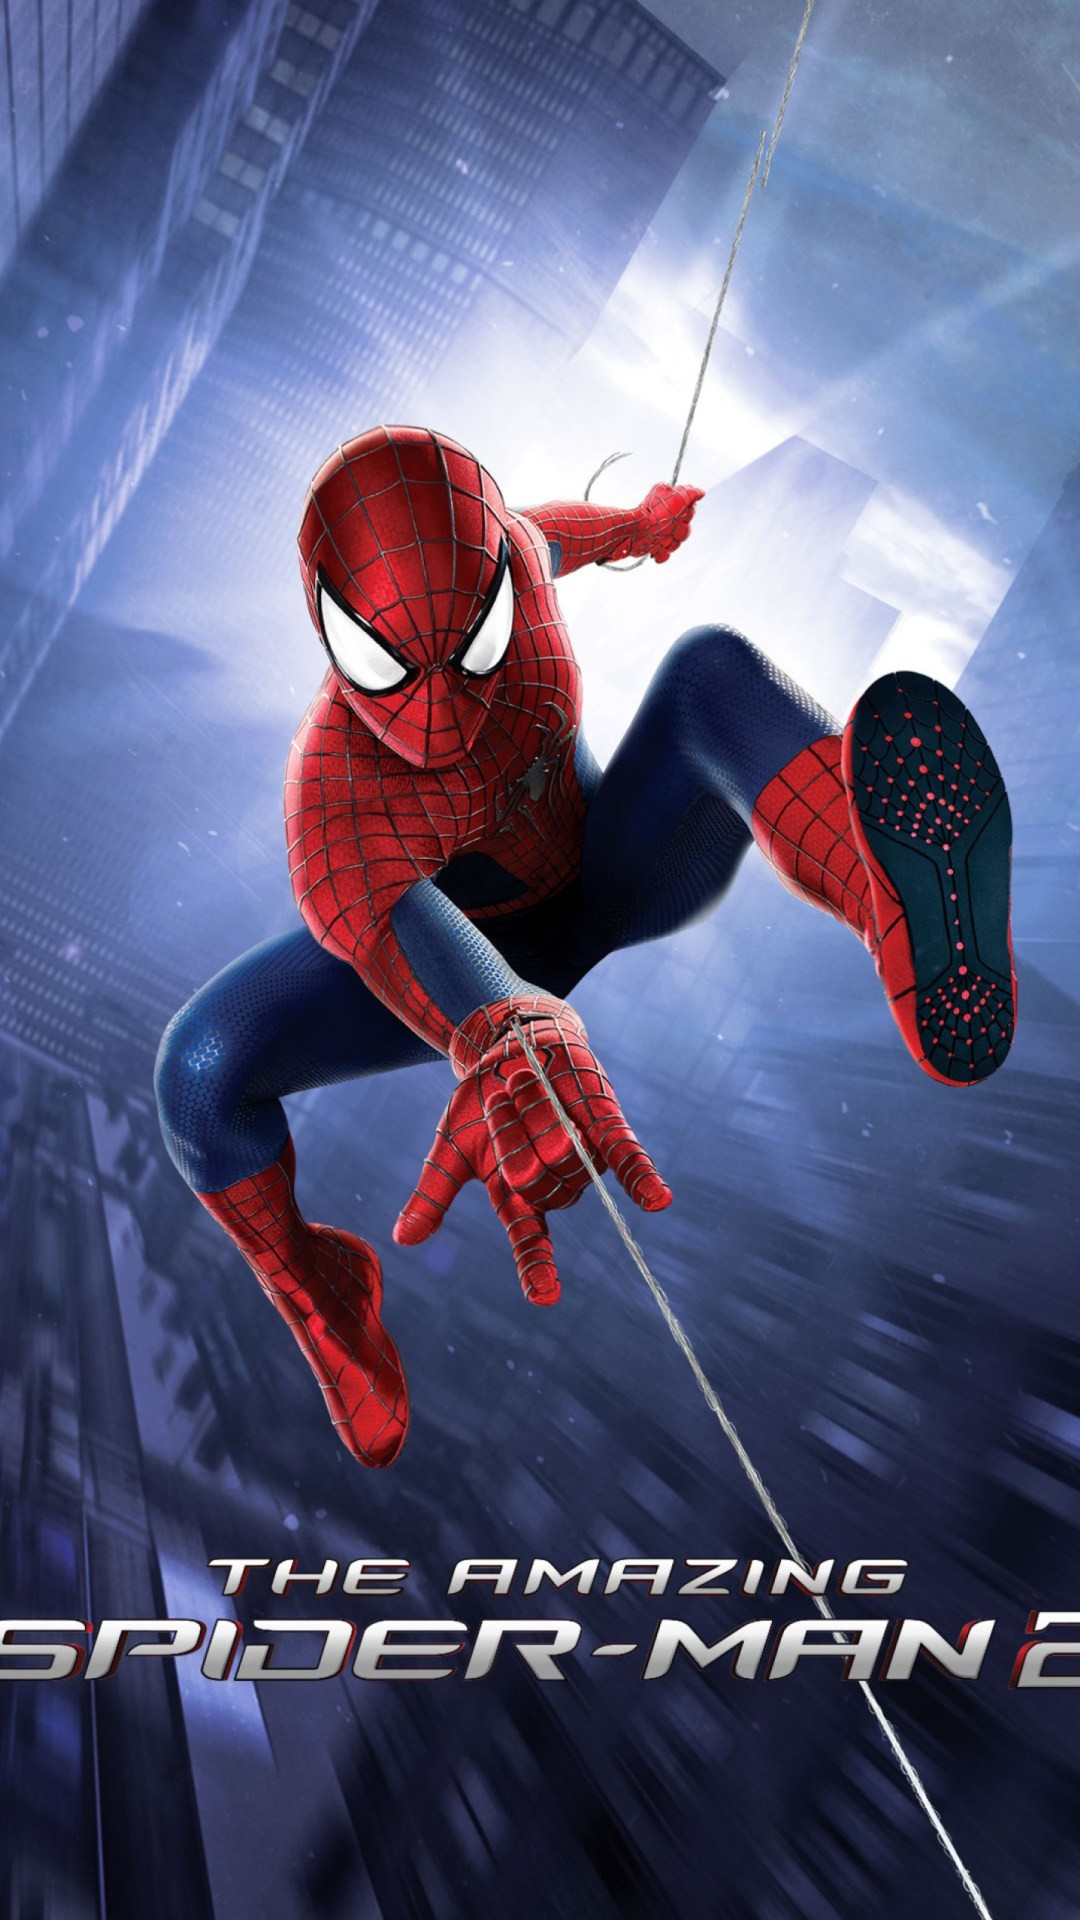 Spiderman iphone wallpaper hd 83 images - Iphone 6 spiderman wallpaper ...